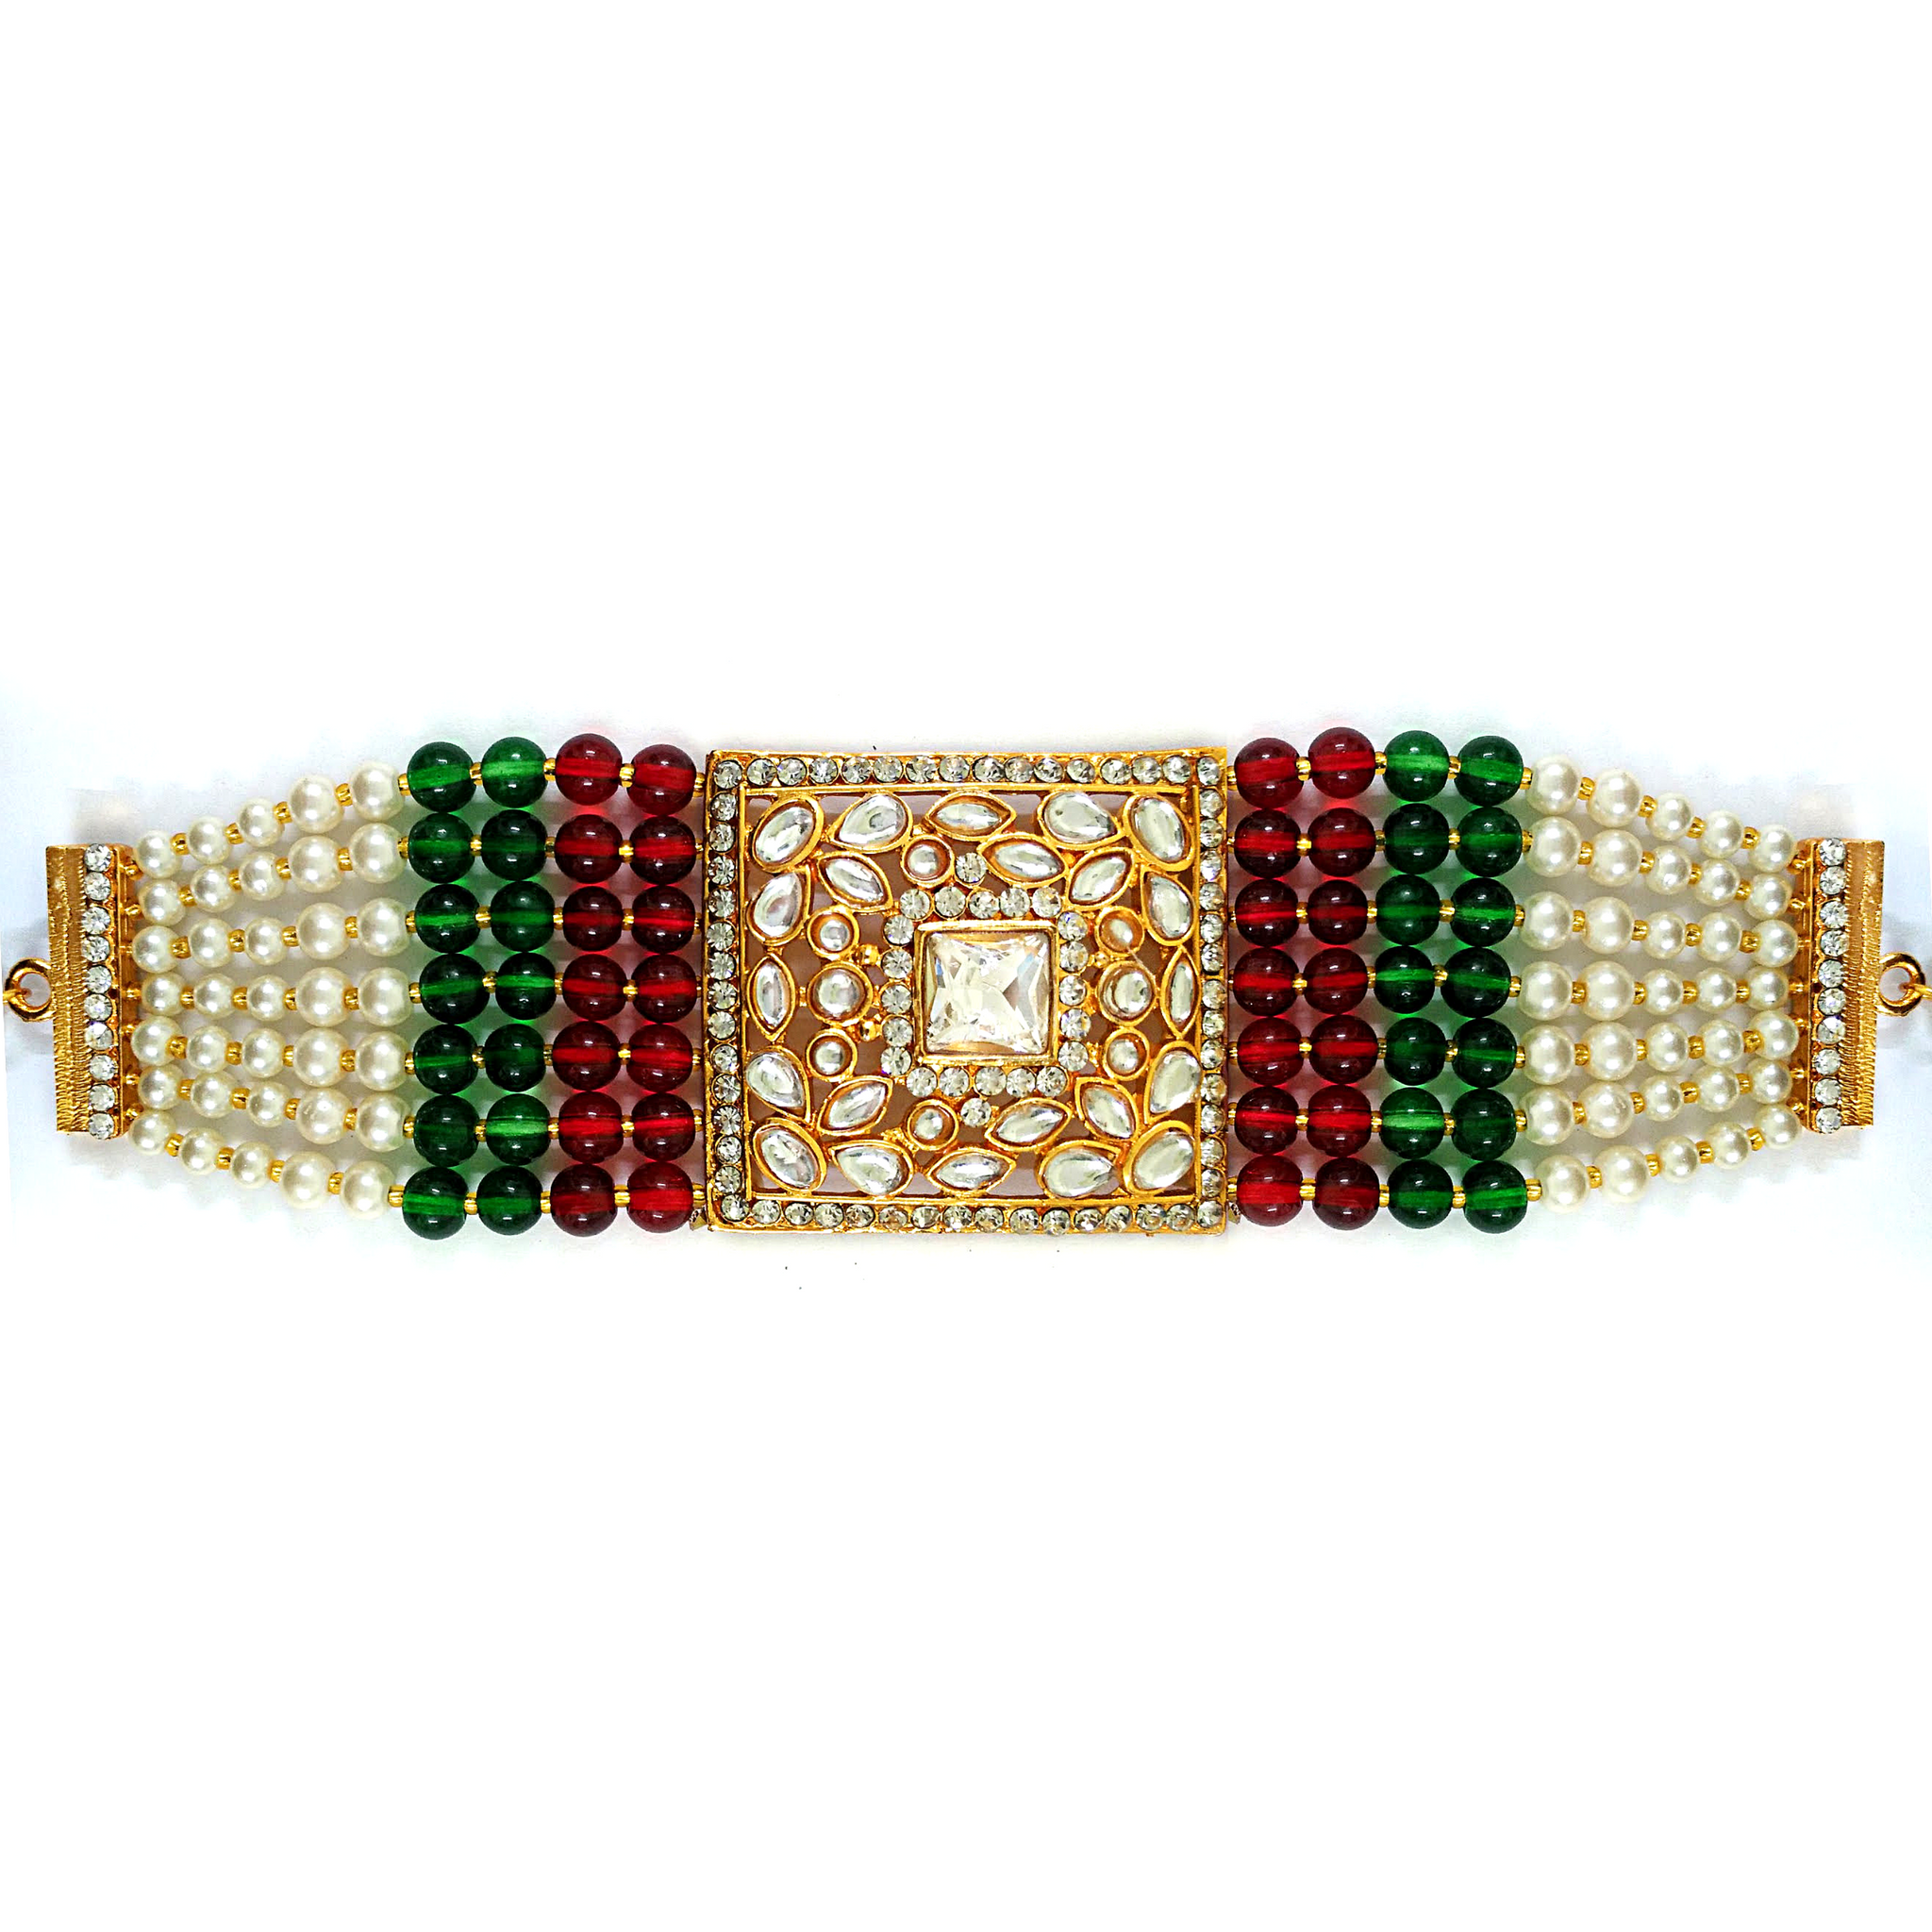 Golden Kundan and Moti Embedded Bracelet